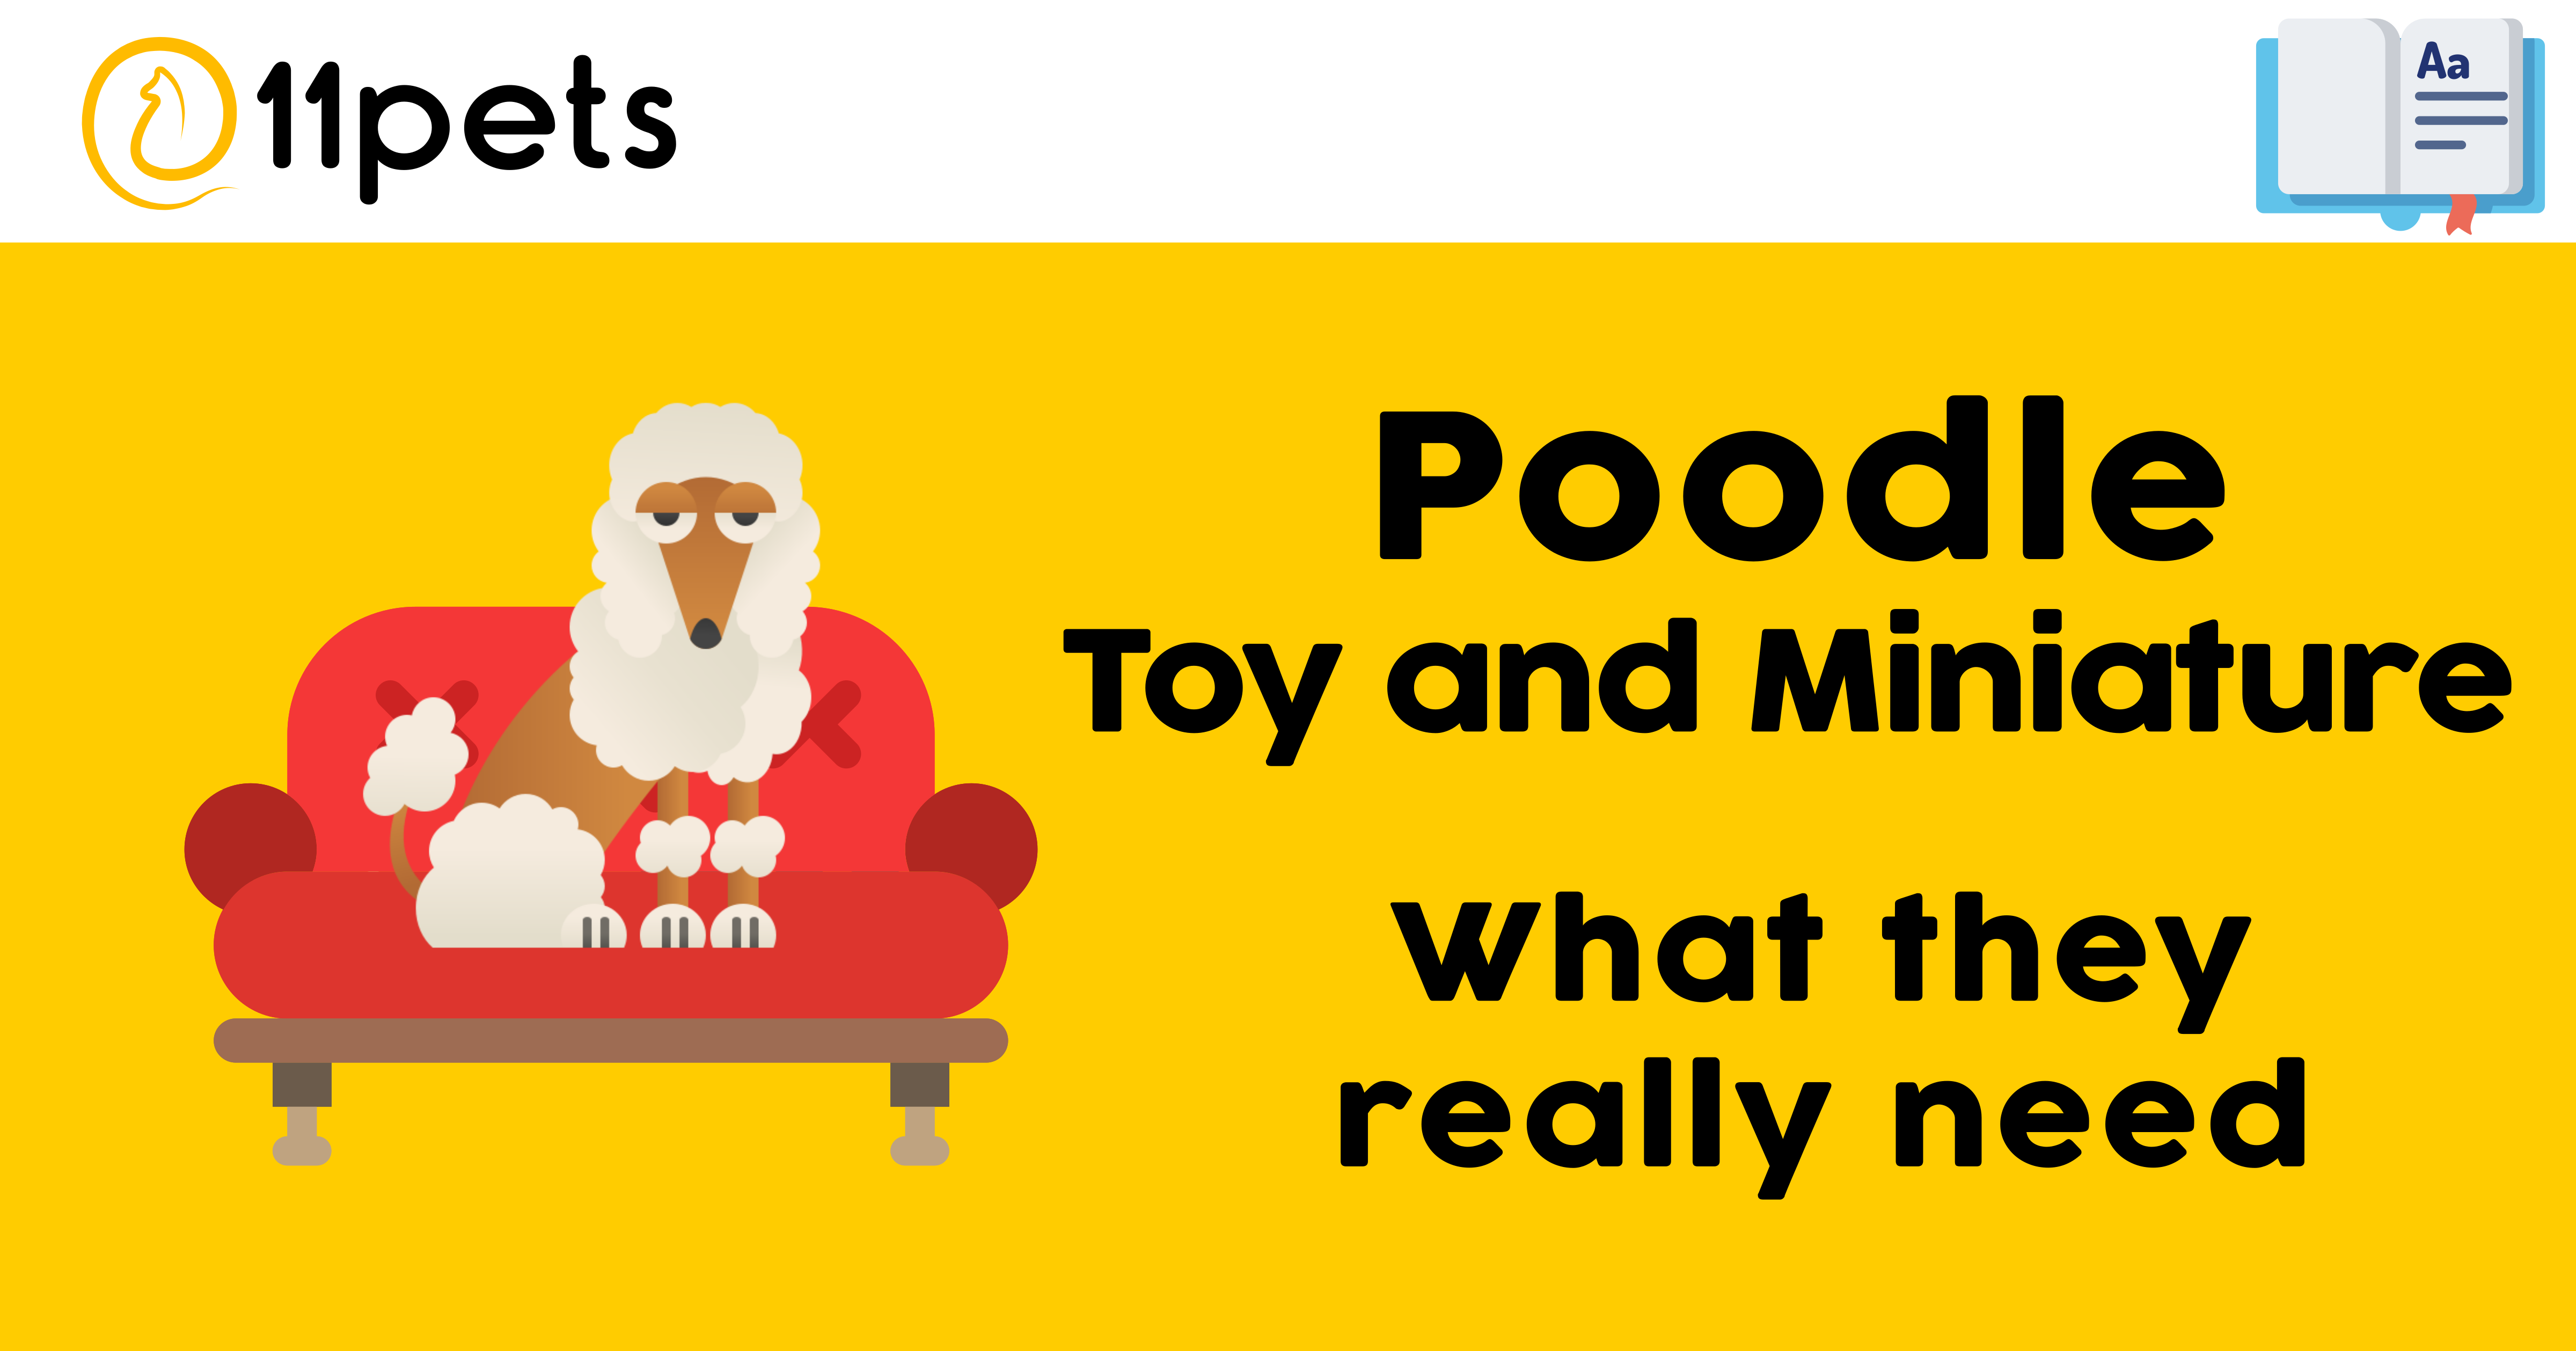 Poodle Toy and Miniature - What they really need